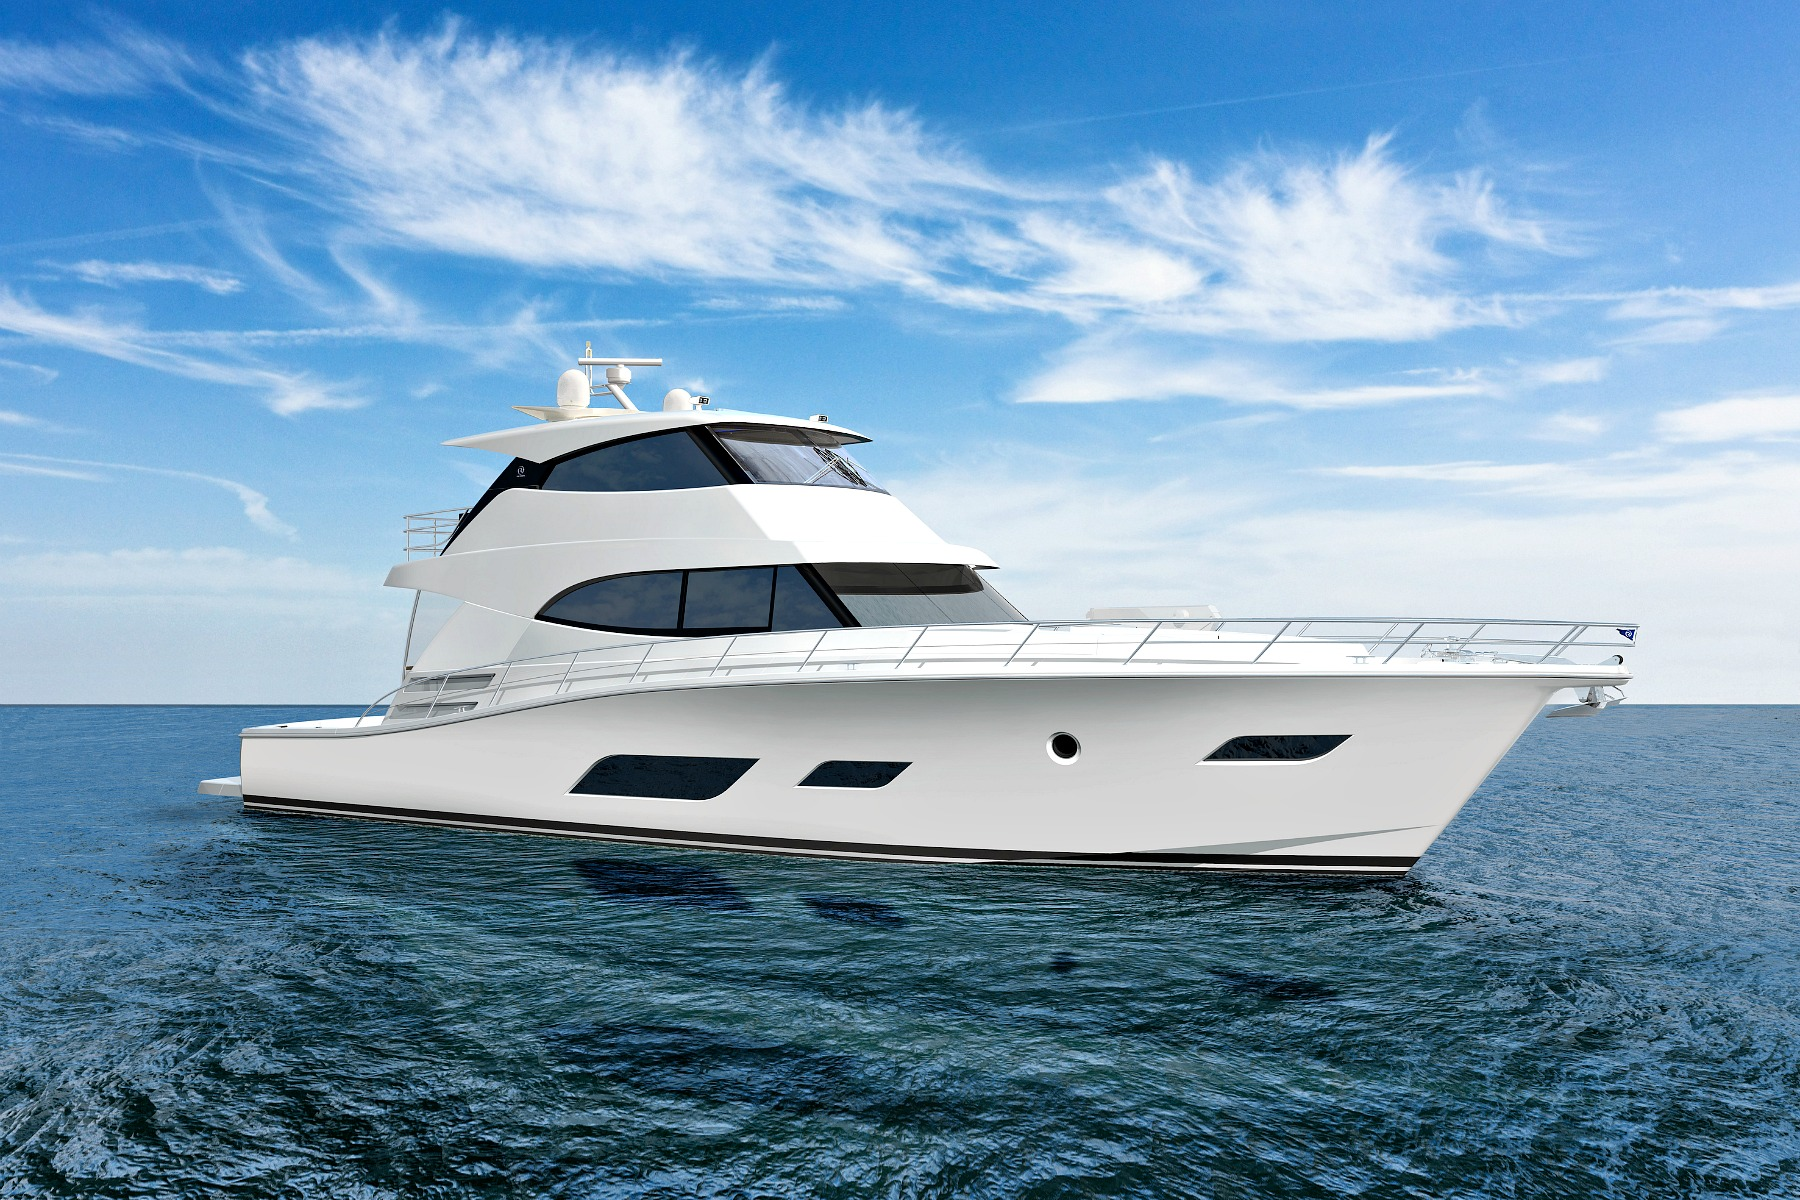 72 Sports Motor Yacht from Riviera